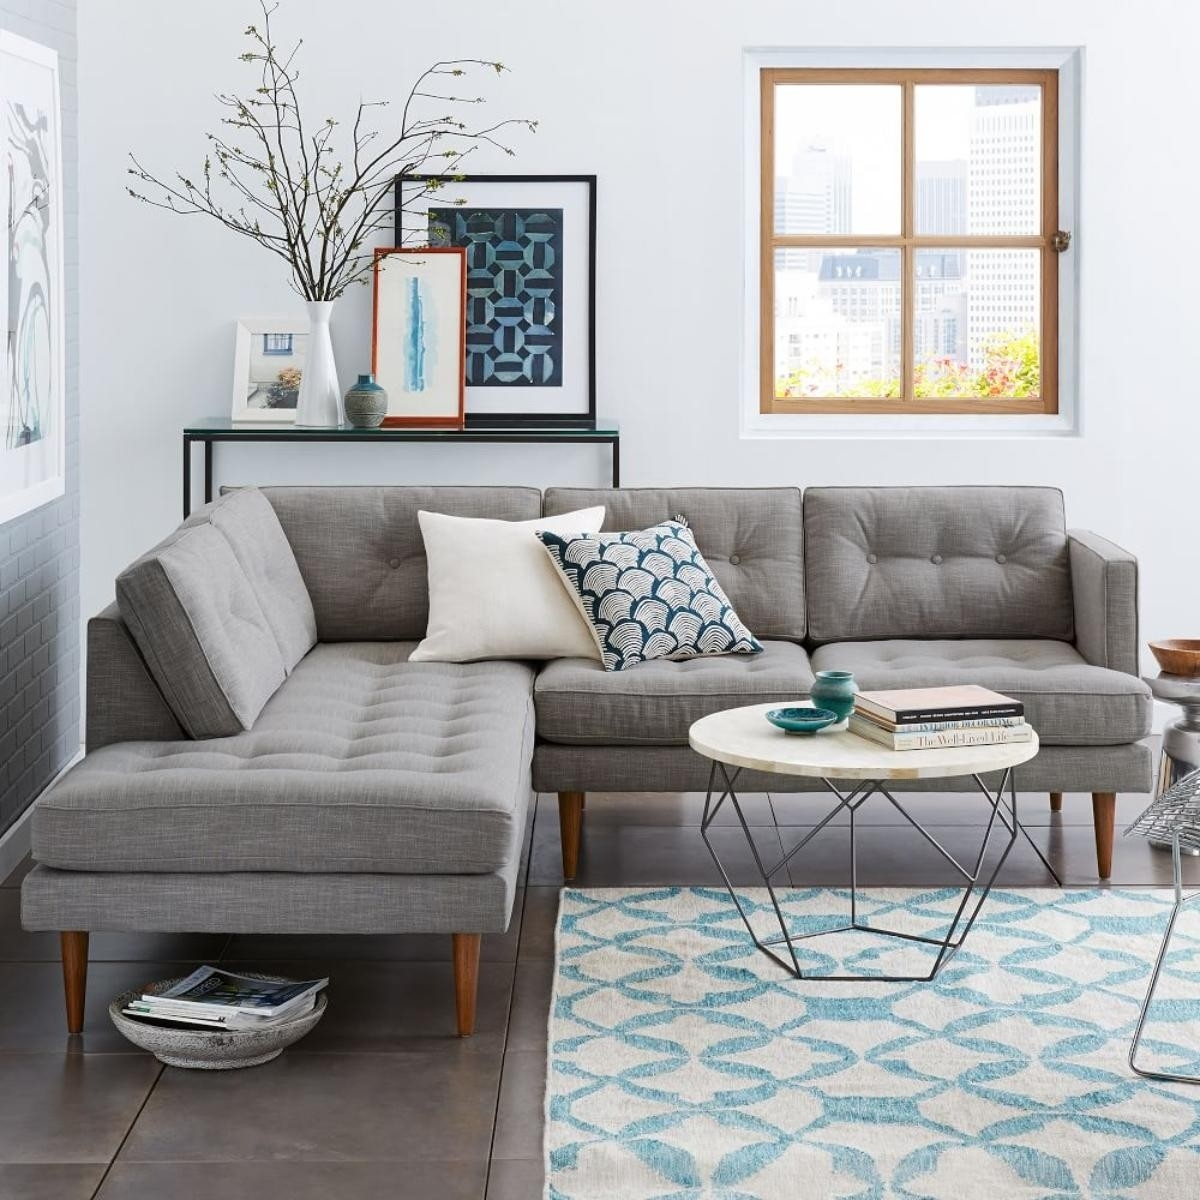 New West Elm Sectional Sofa - Buildsimplehome intended for West Elm Sectional Sofas